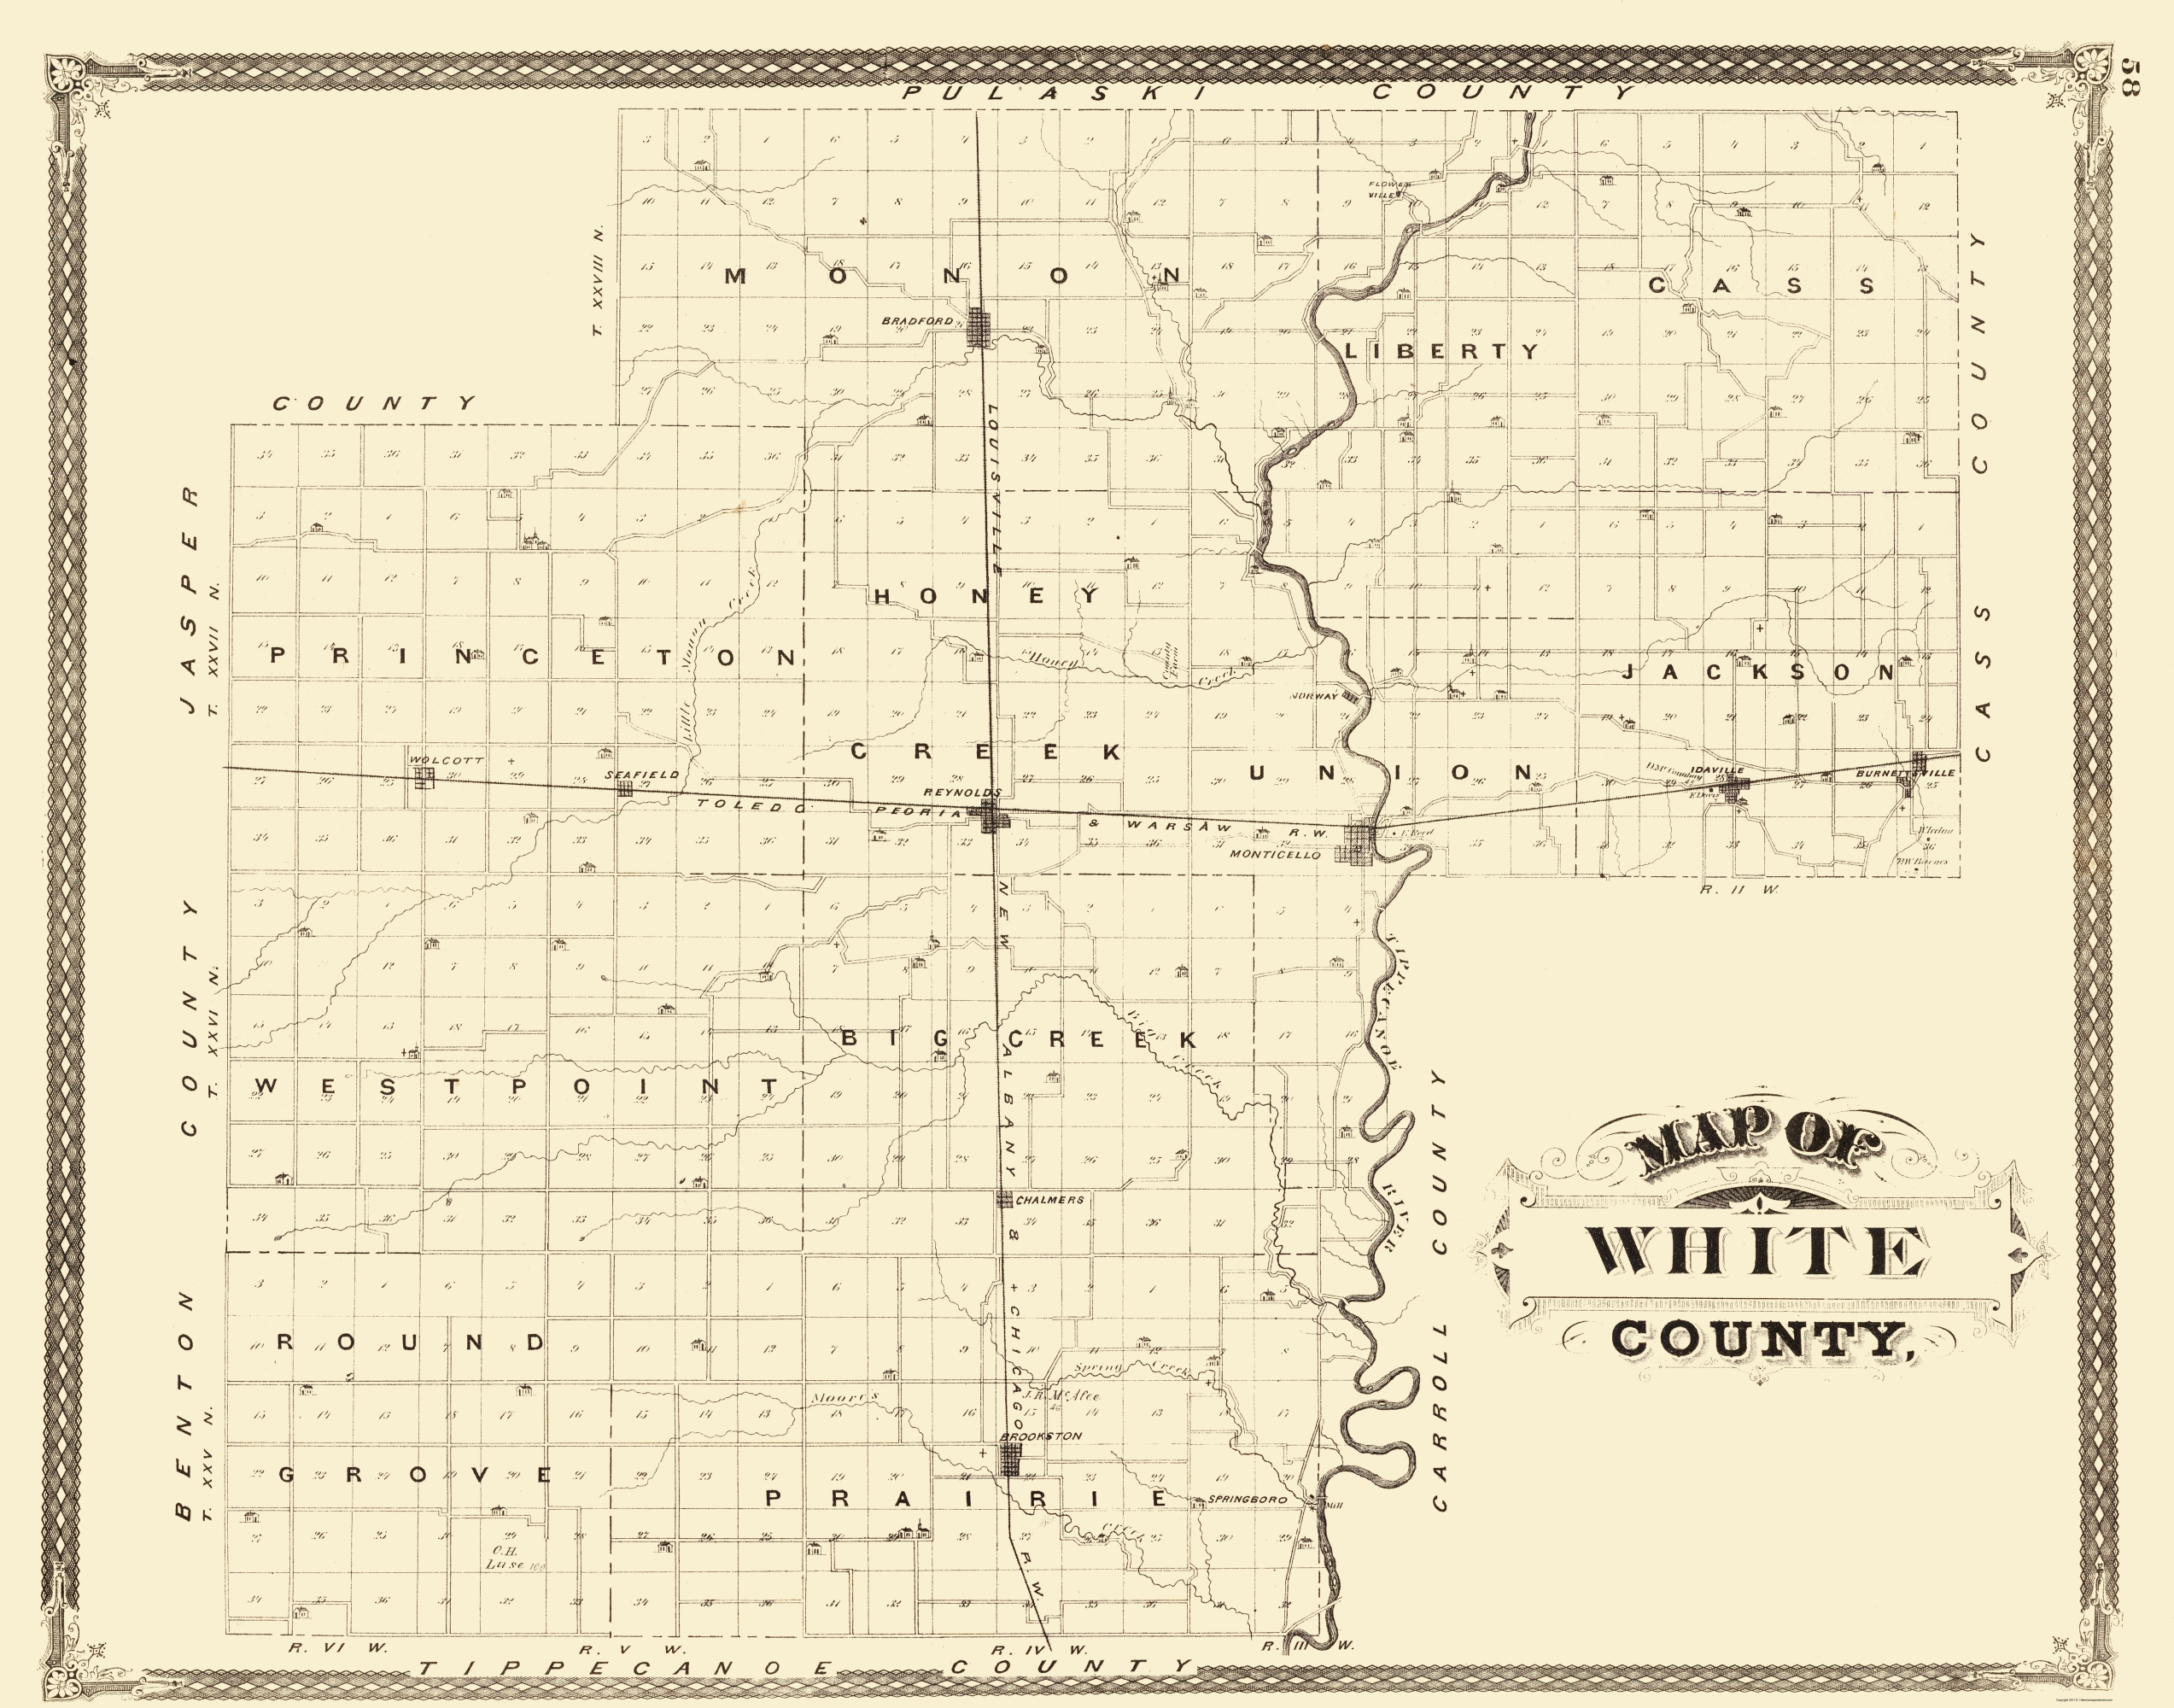 Indiana County Map Of White on putnam county, lawrence county, map of miami county indiana, benton county, map of clinton county indiana, map of clay county indiana, grant county, miami county, map of jay county indiana, steuben county, map of lake county indiana, porter county, morgan county, map of perry county indiana, map of montgomery county indiana, wells county, knox county, map of hamilton county indiana, map of martin county indiana, map of jackson county indiana, lake county, laporte county, map of delaware county indiana, map of orange county indiana, pulaski county, washington county, clay county, map of benton county indiana, map of grant county indiana, tippecanoe county, map of clark county indiana, newton county, map of dearborn county indiana, map of st. joseph county indiana, vanderburgh county, map of franklin county indiana, map of johnson county indiana, map of henry county indiana, madison county, wabash county,